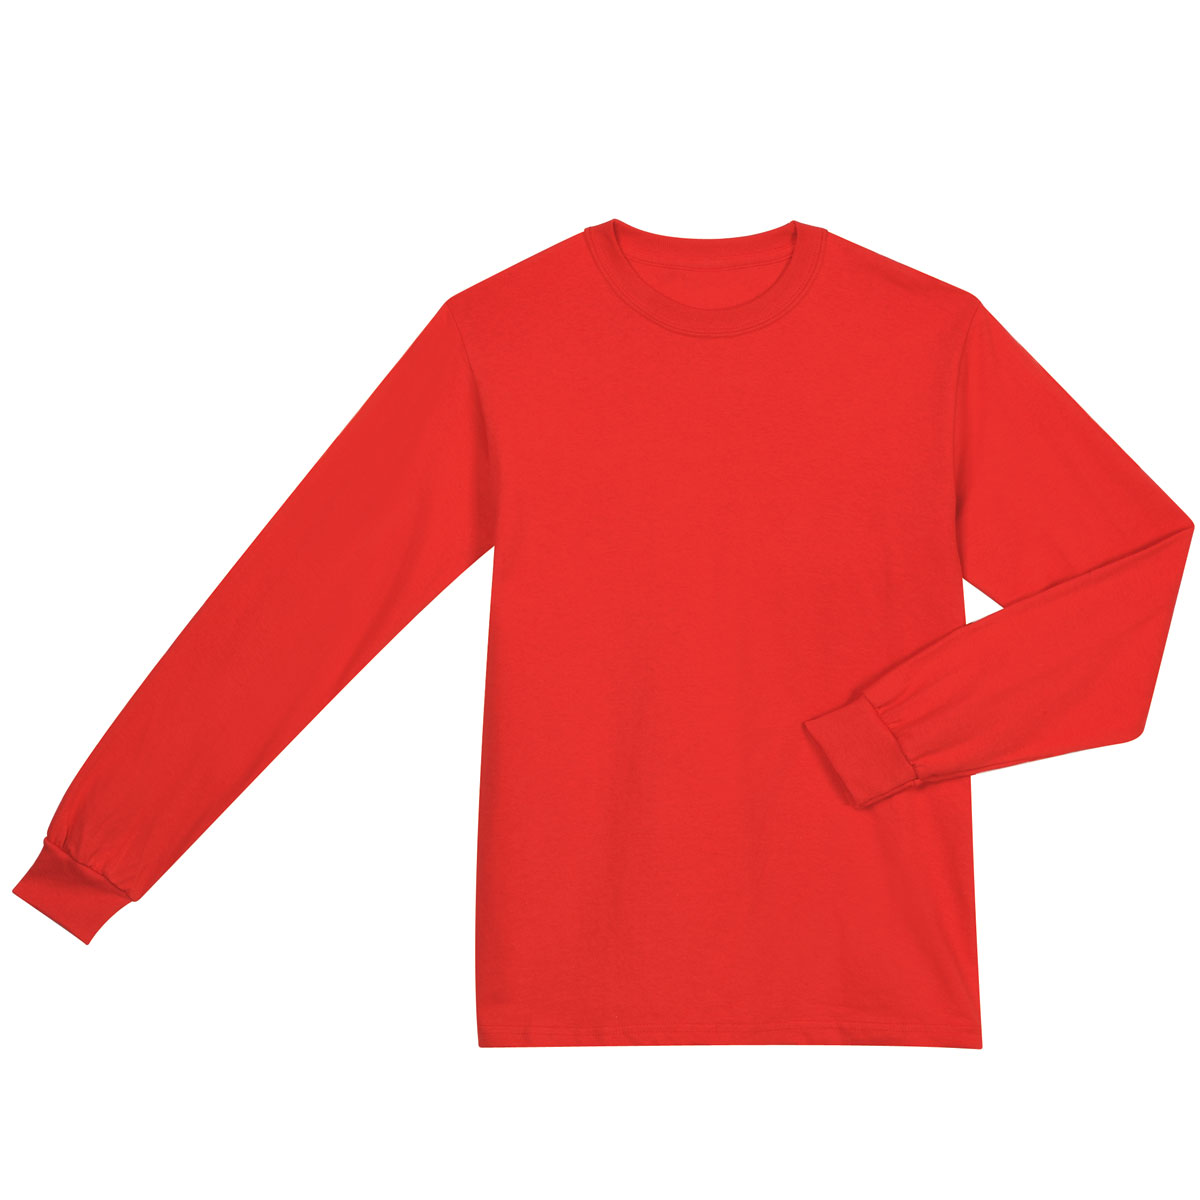 Long sleeve t shirt clipart clipart suggest for What is a long sleeve t shirt